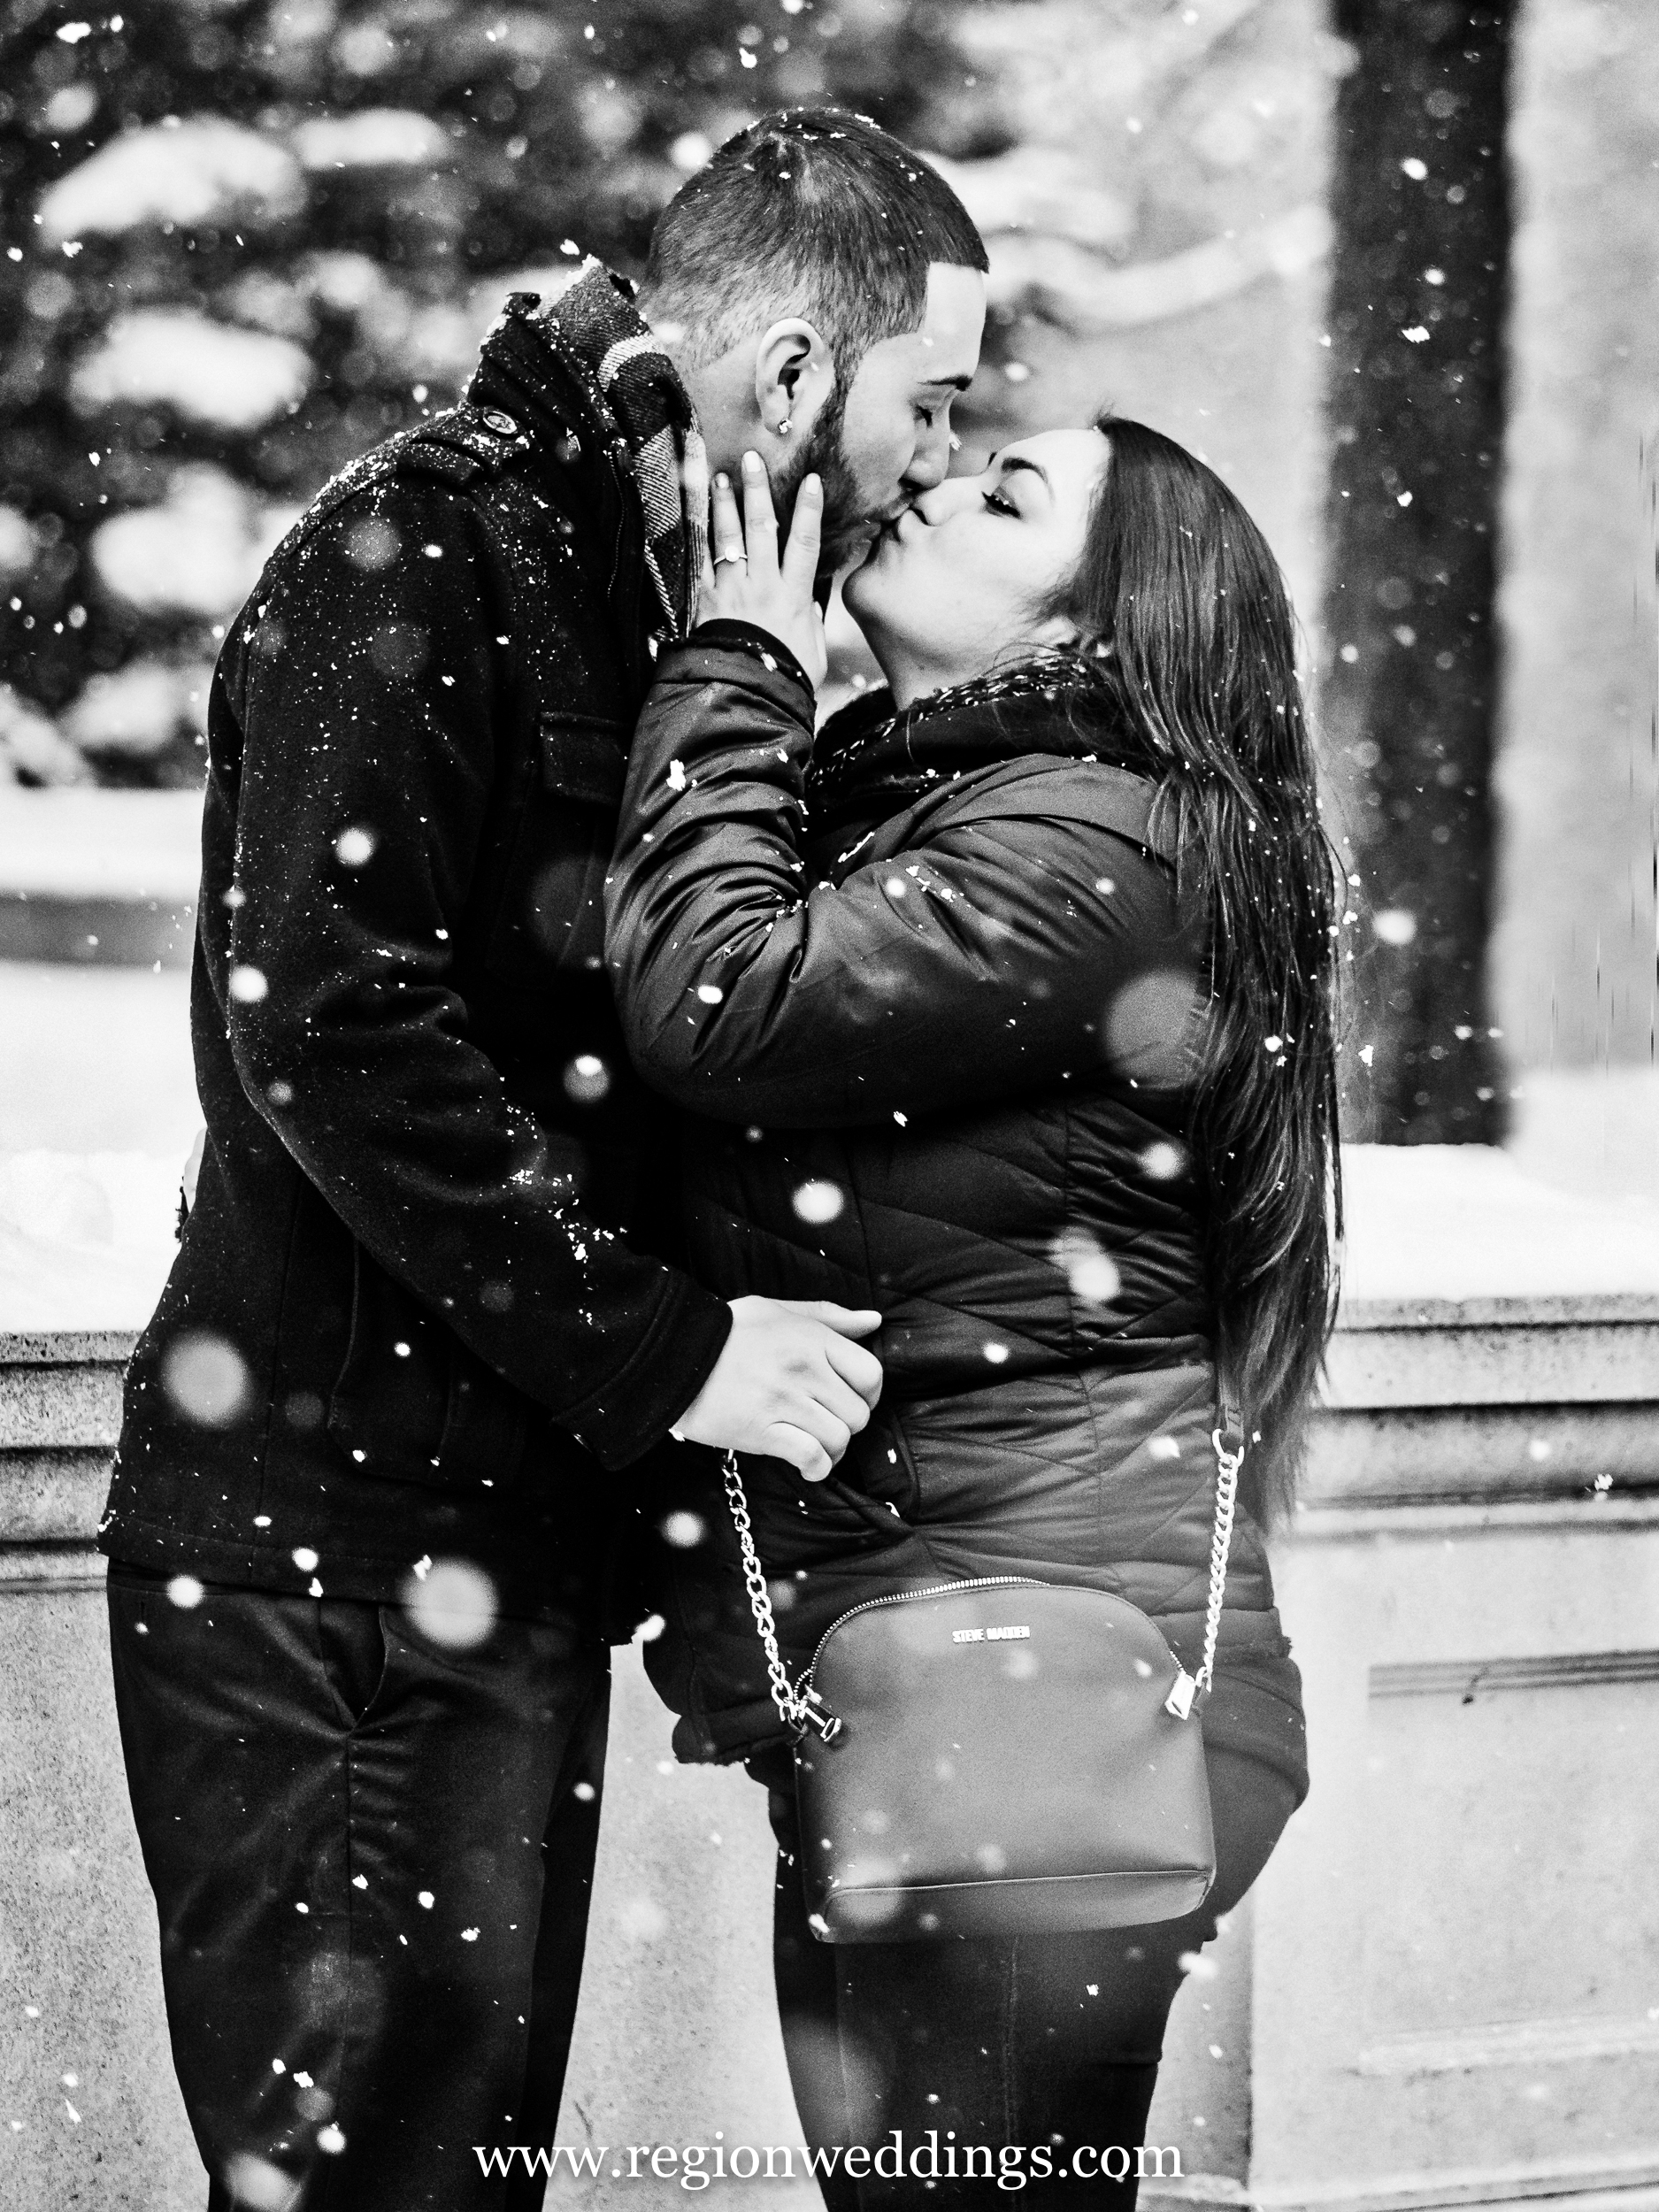 Winter kiss during a snowstorm in Chicago.